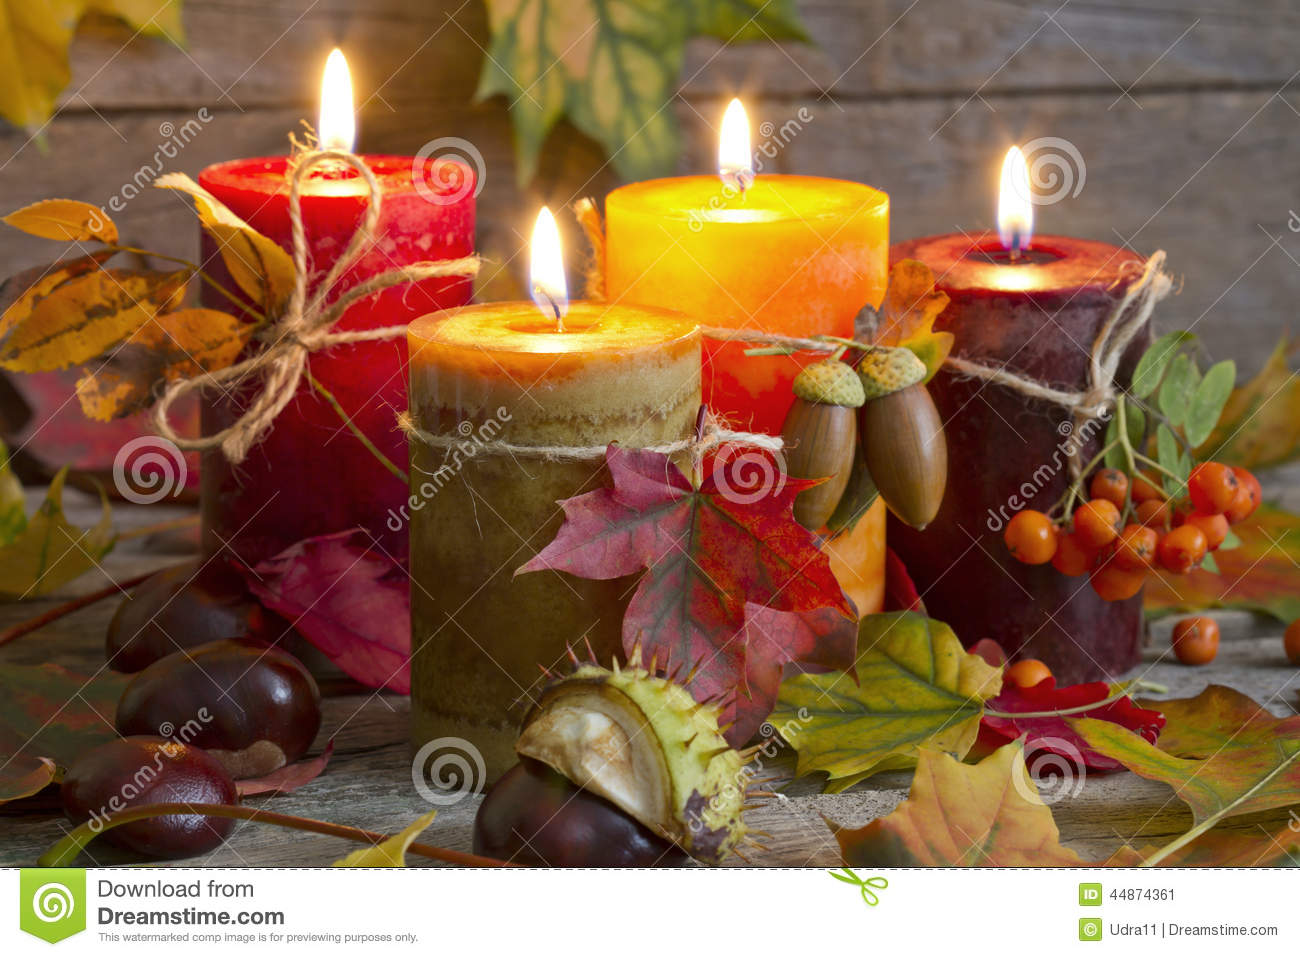 Fall Candles Wallpaper Autumn Candles With Leaves Vintage Abstract Still Life